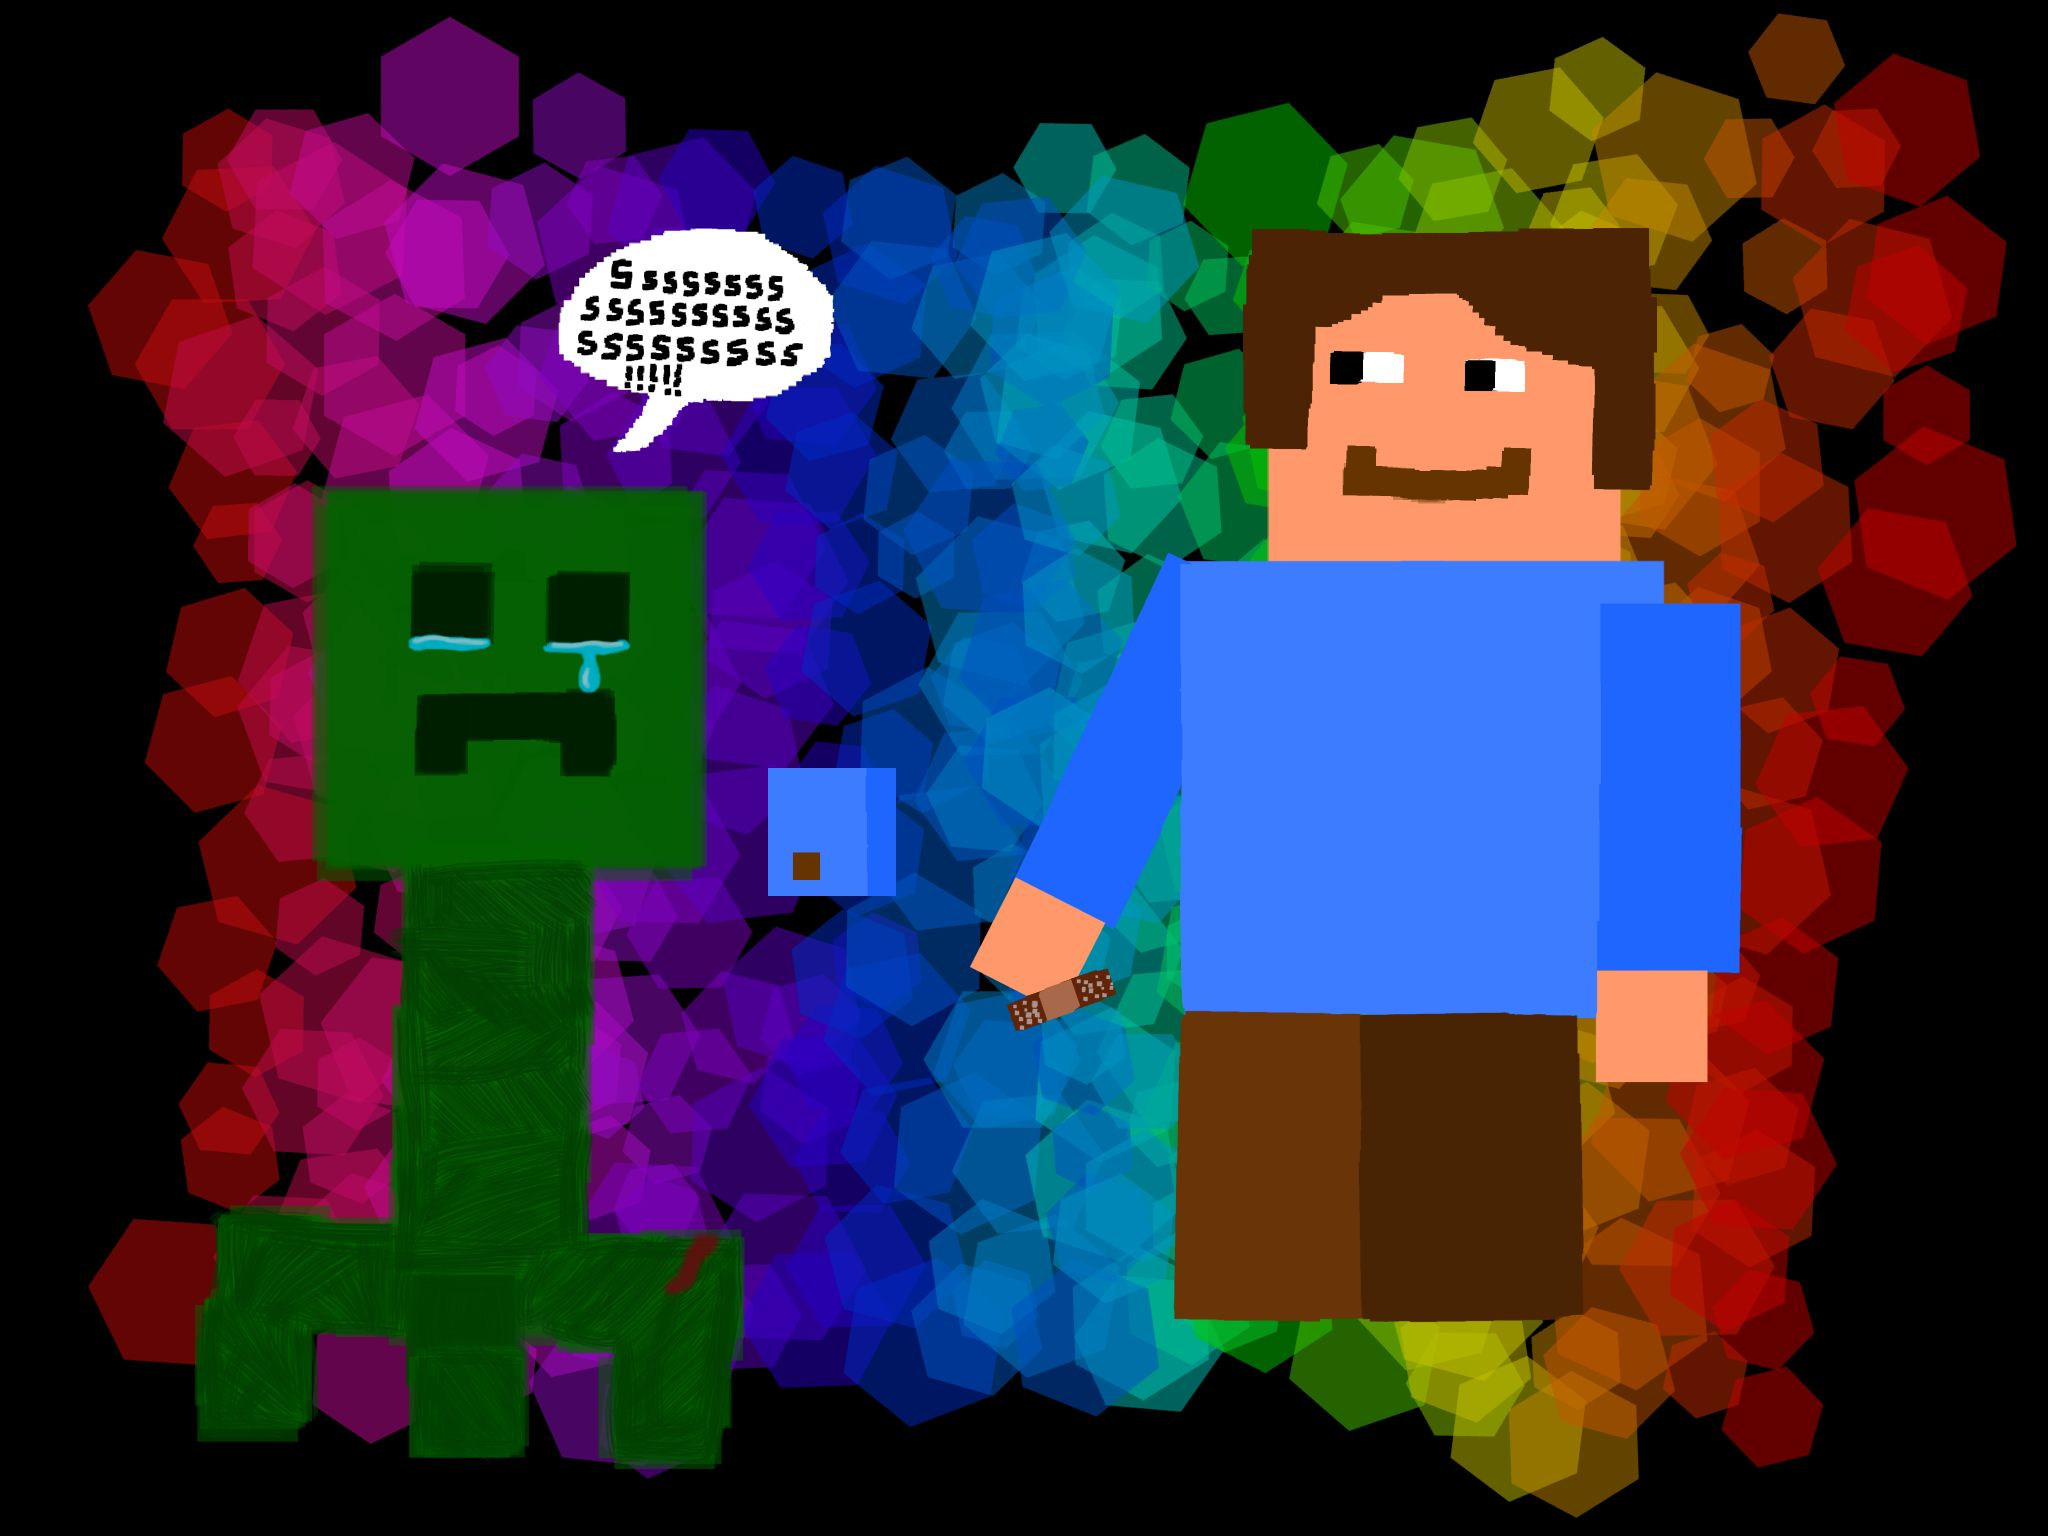 Steve and a Baby Creeper - by me